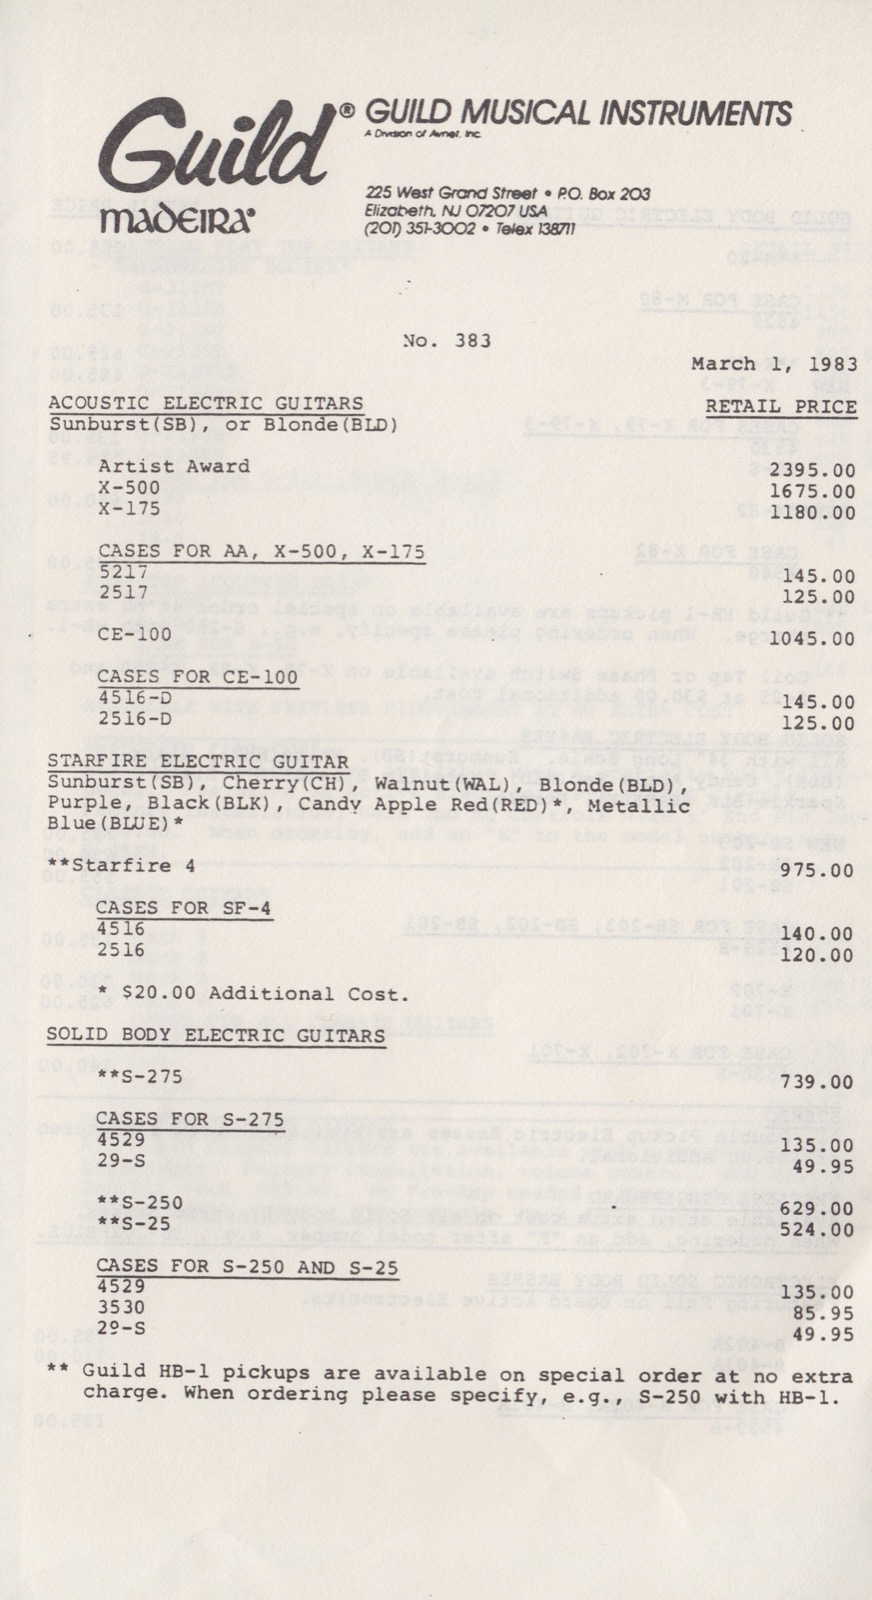 guild guitar price list 1983 march gad 39 s ramblings. Black Bedroom Furniture Sets. Home Design Ideas